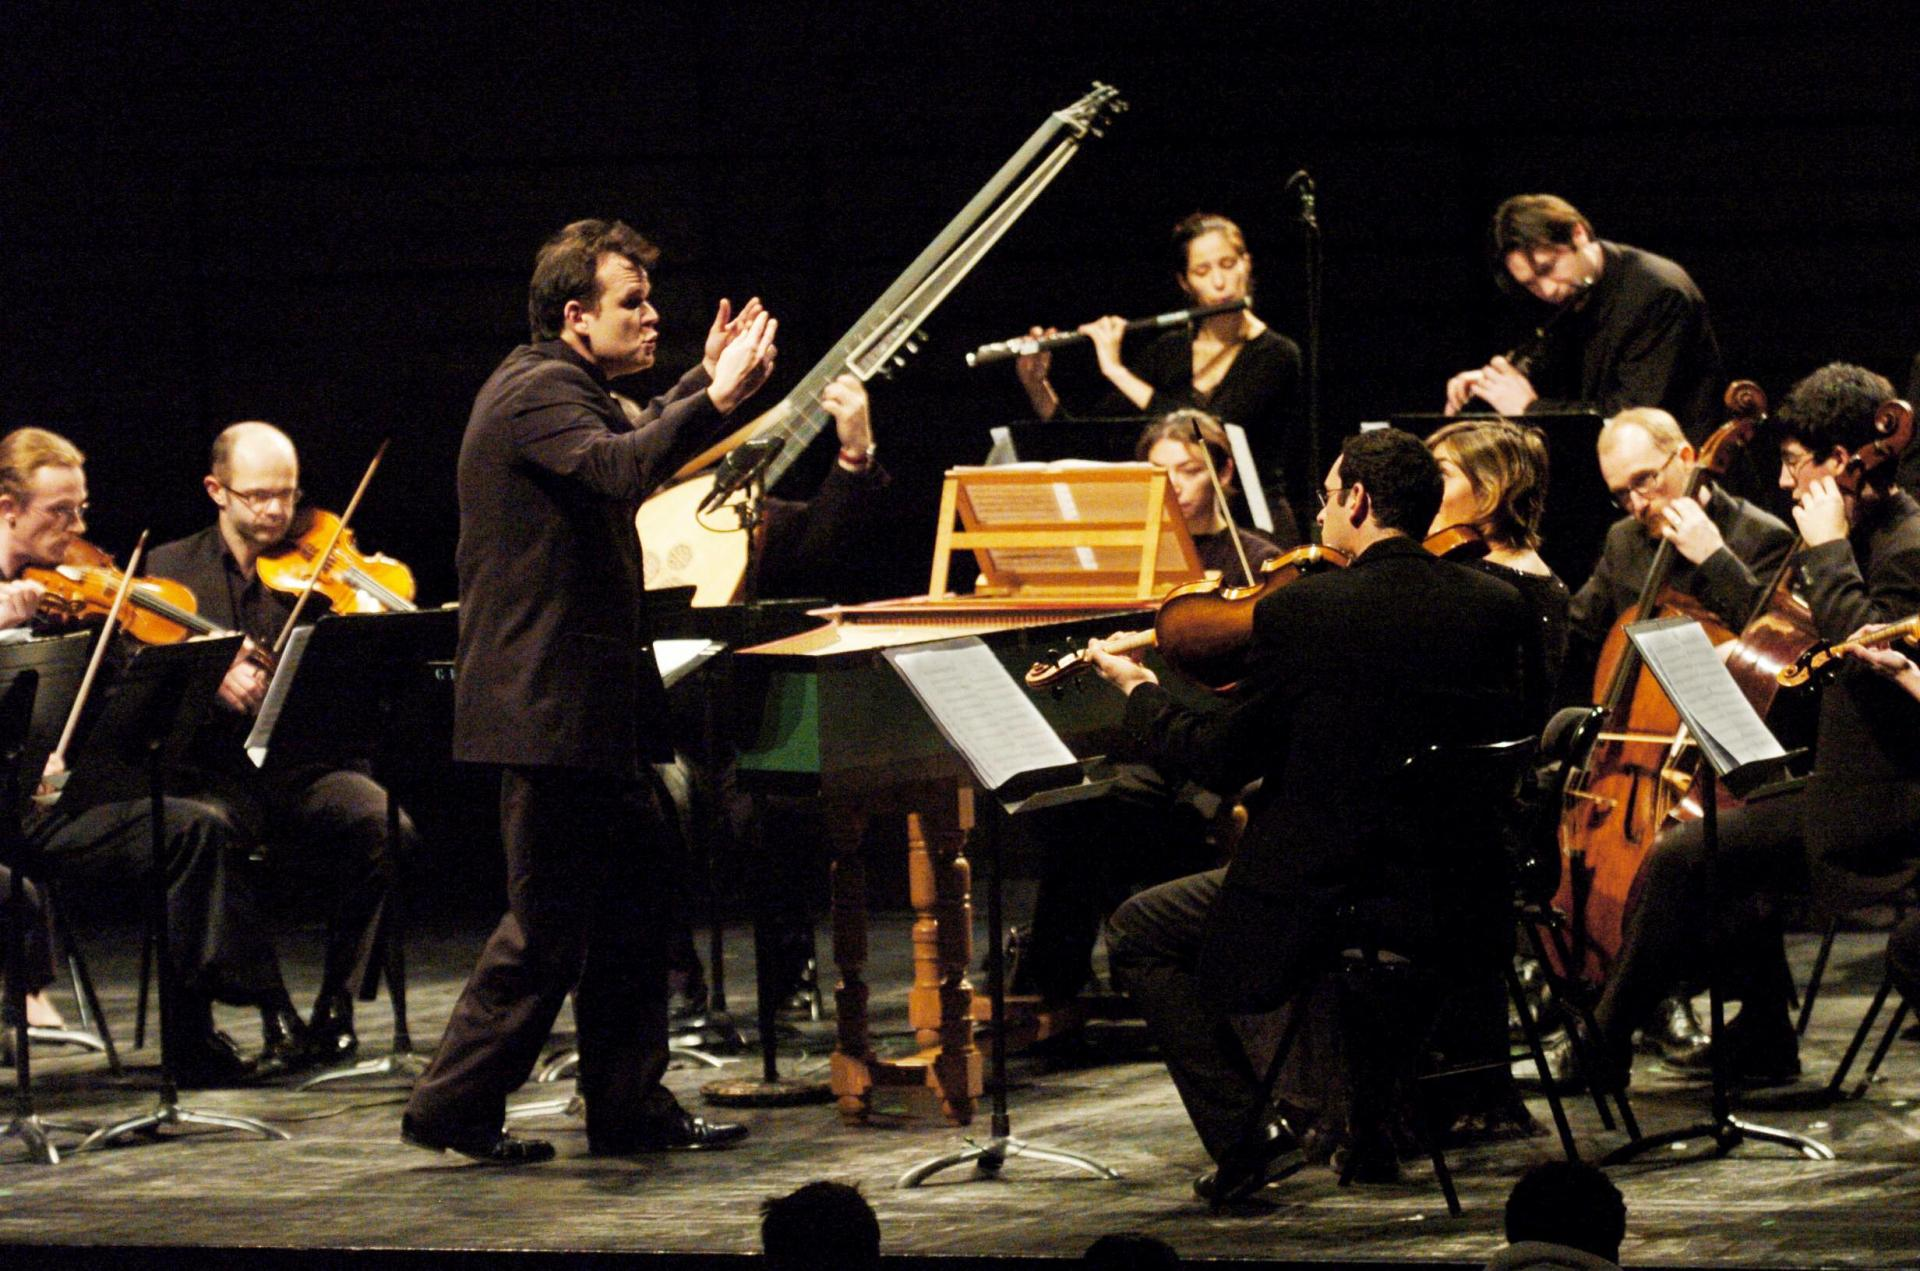 François-Xavier Roth directing Les Siècles during a concert at the Nantes auditorium in January 2006. Photo: Frank Perry / AFP